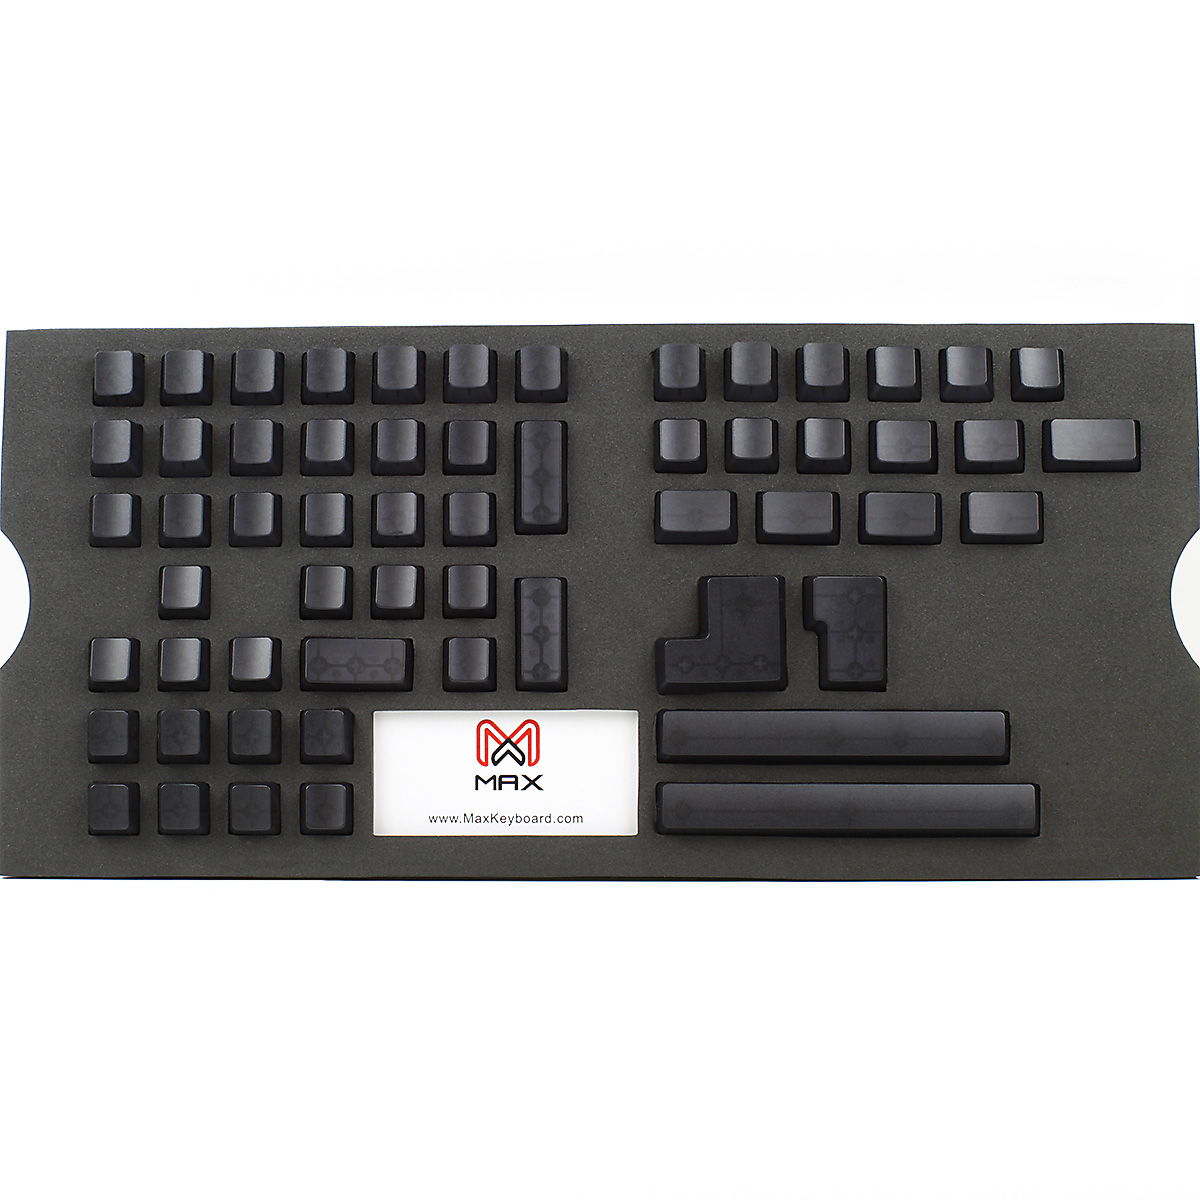 Max Universal Cherry Mx Black Translucent Full Keycap Set Blank Ducky One Non Backlit Blue Keyboard Clear No Print